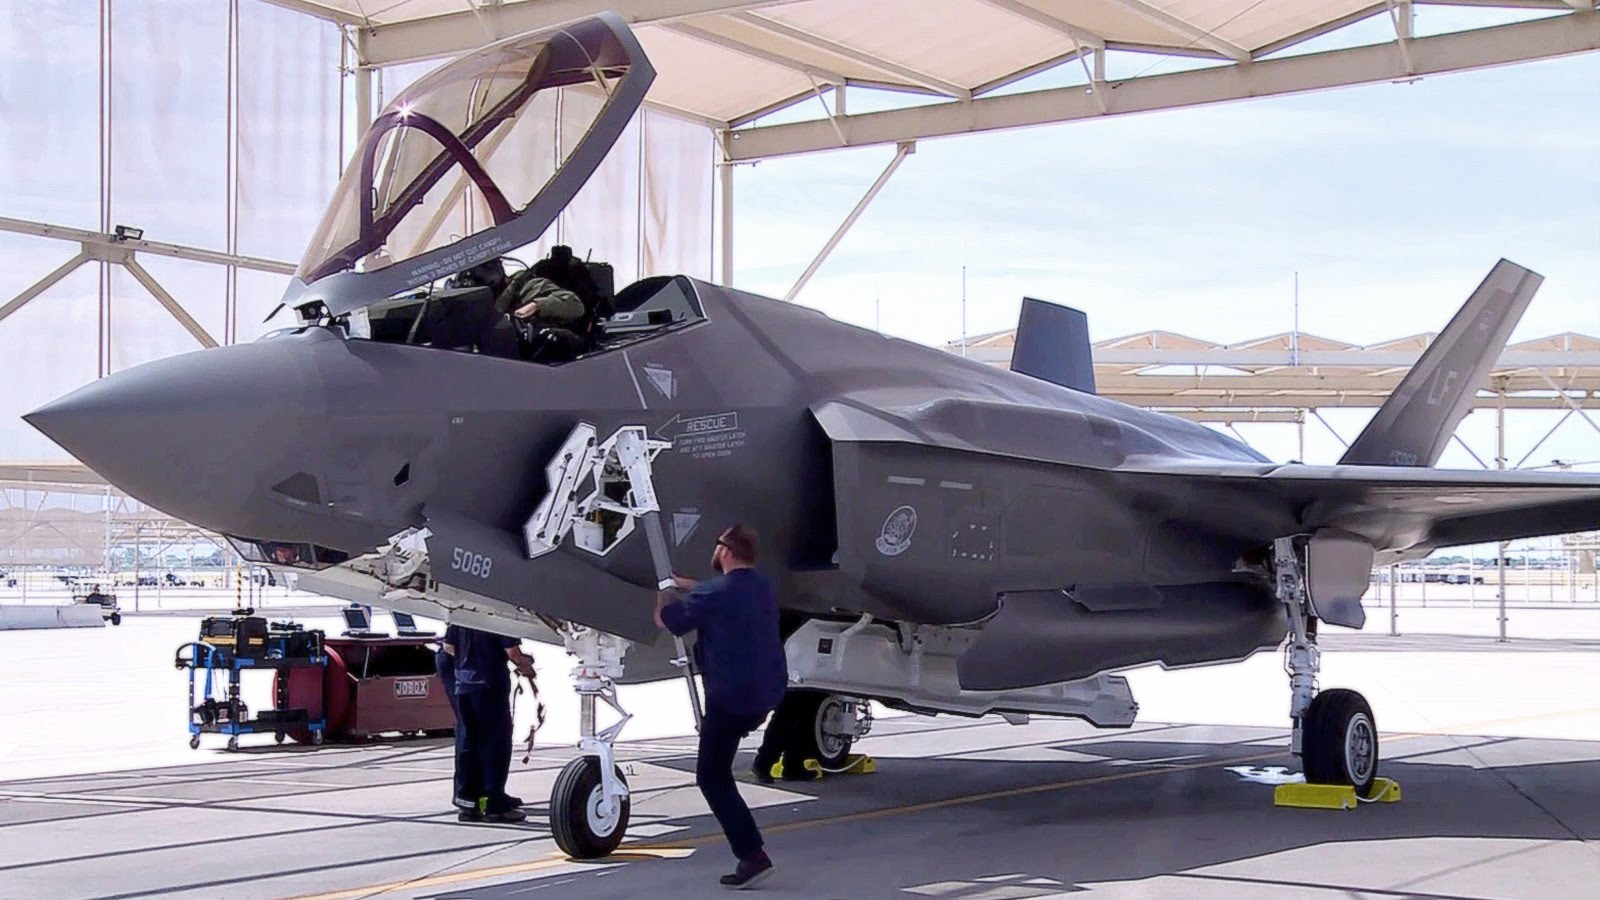 F-35 Squadron Gets Brand Spanking New F-35 Jets